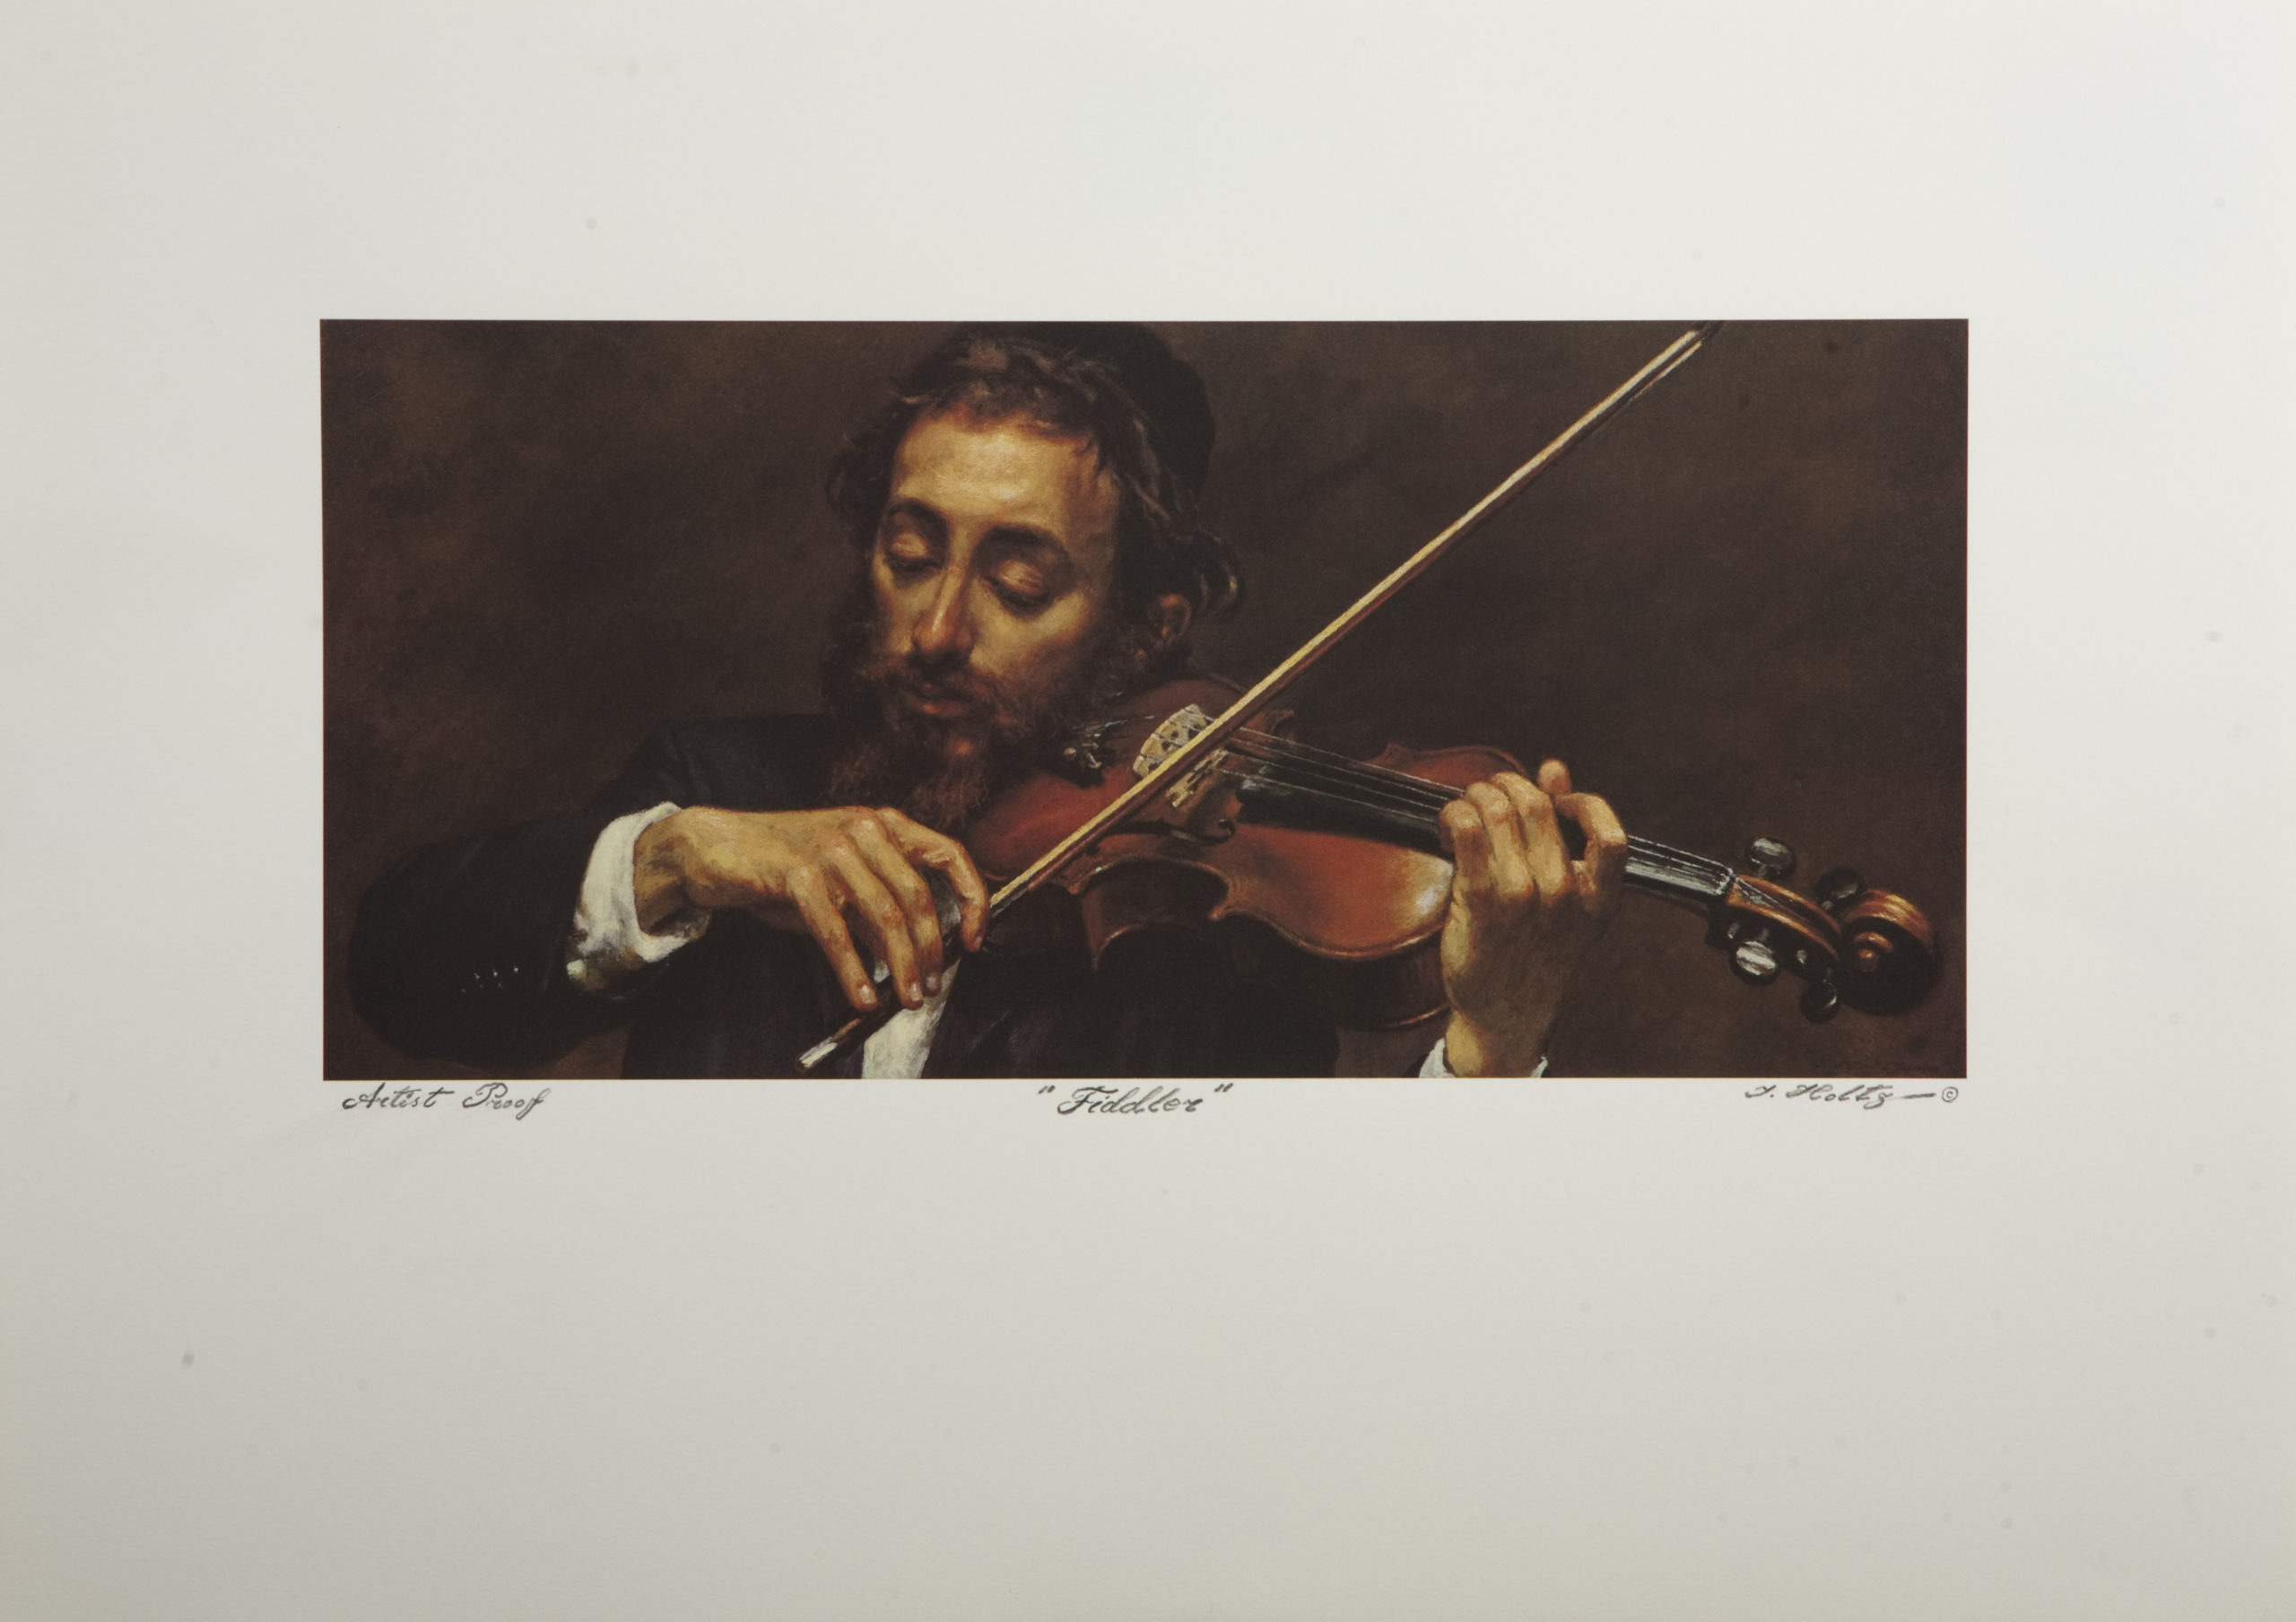 L10 Fiddler - Color - Lithograph - 26.25 x 16.5 - No Frame - $450